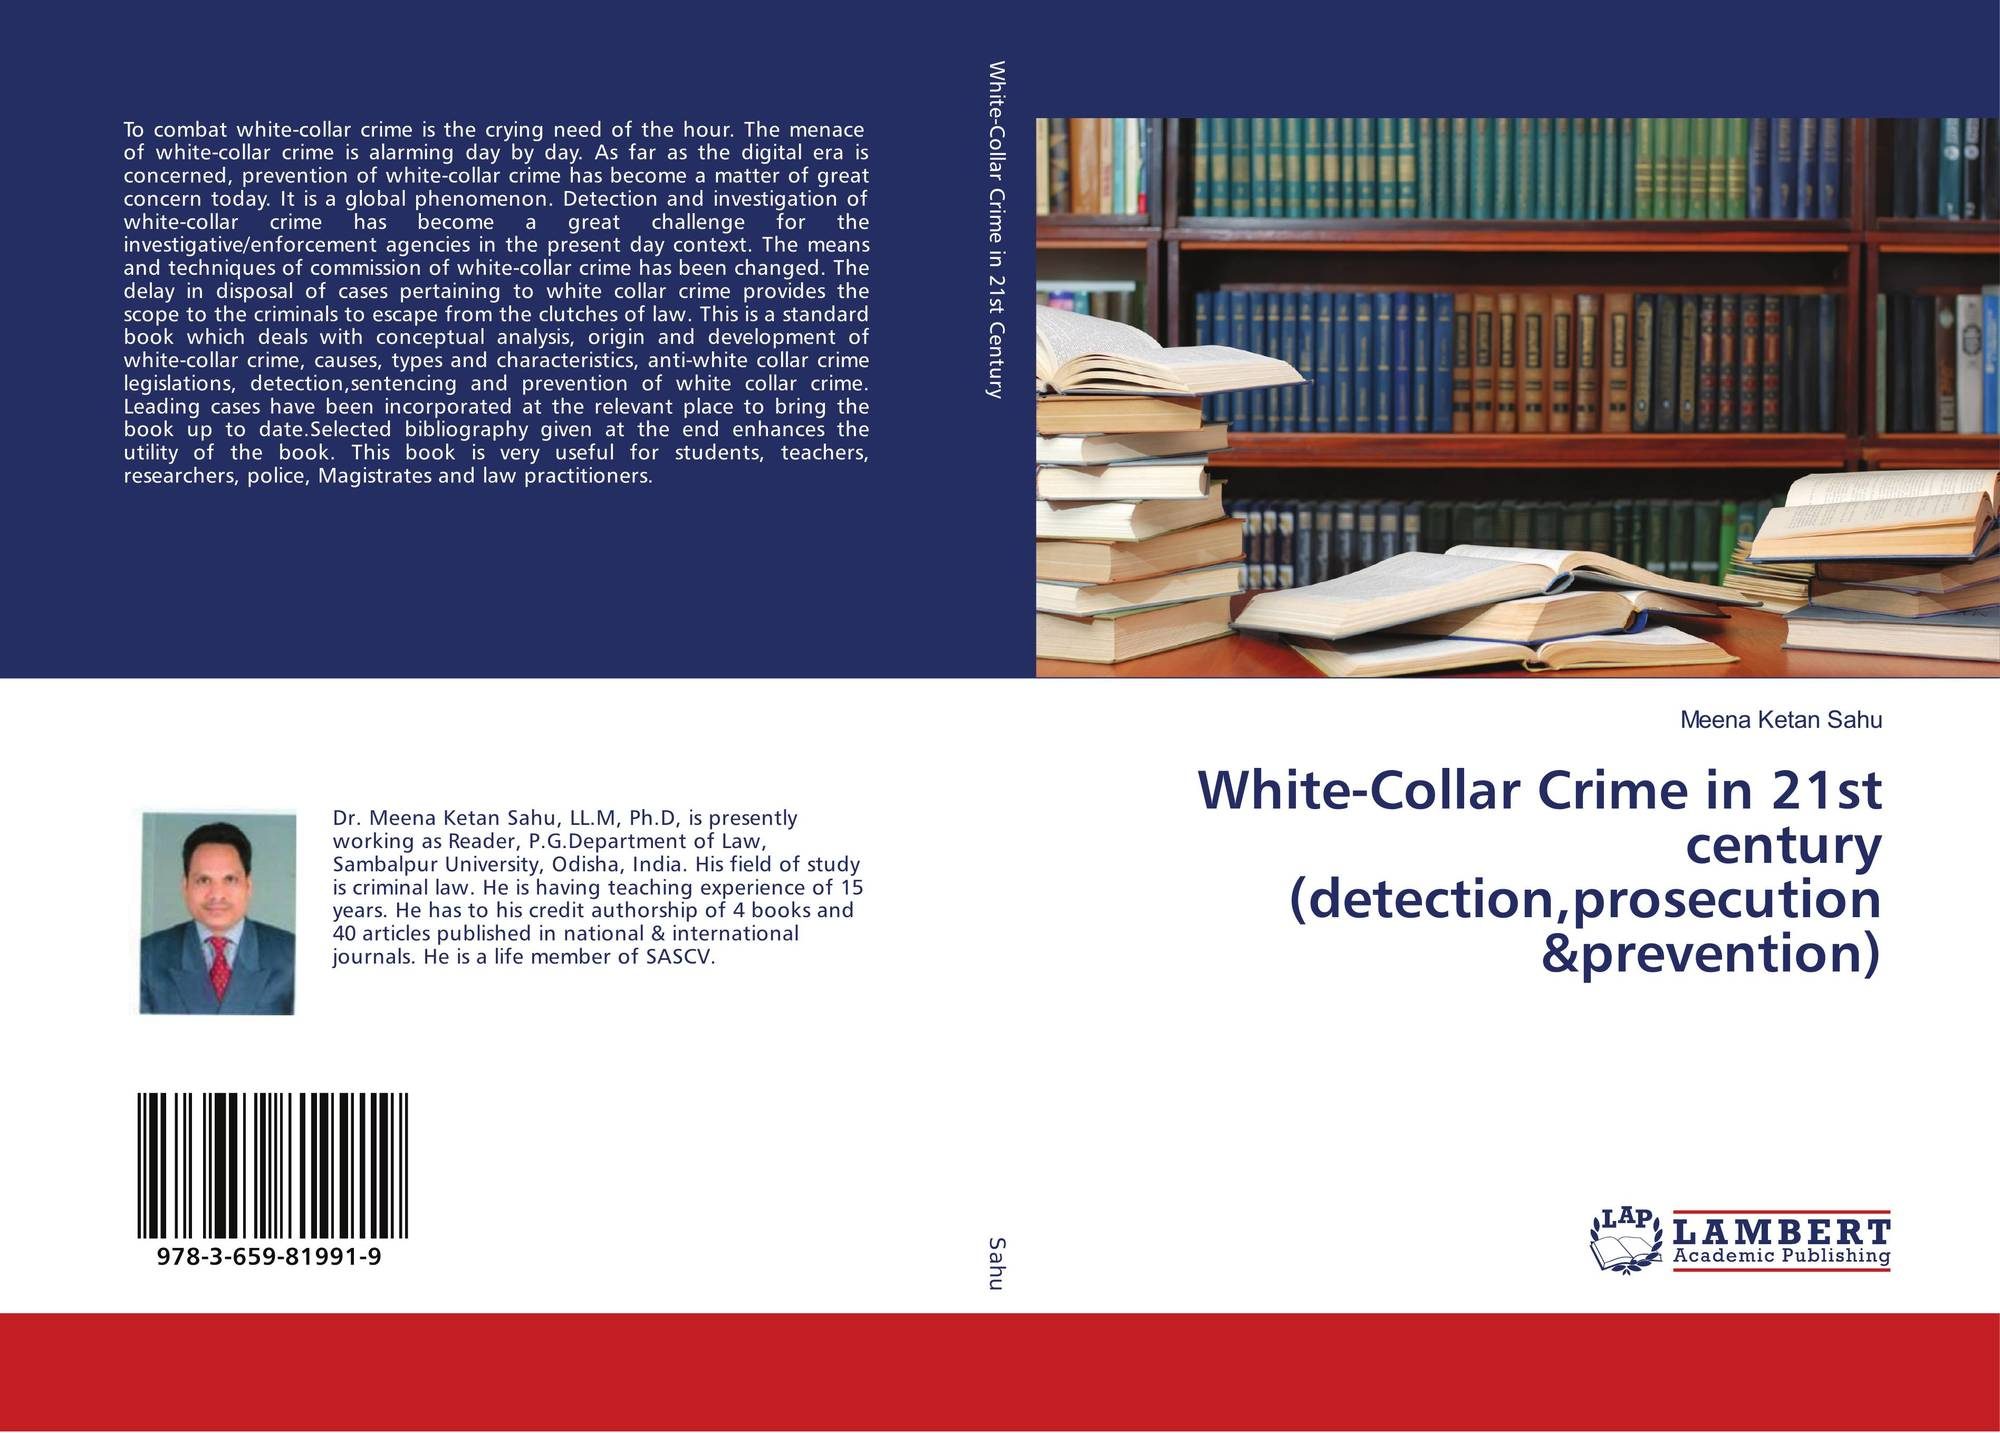 an analysis of the white collar crime and crime preventative agencies Crime prevention through environmental design, cpted, is a well known crime prevention strategy even though its focus is traditional street crime, its principles can be applied to wcc cptapd, crime prevention through awareness and procedural design, is a more appropriate system for preventing wcc.